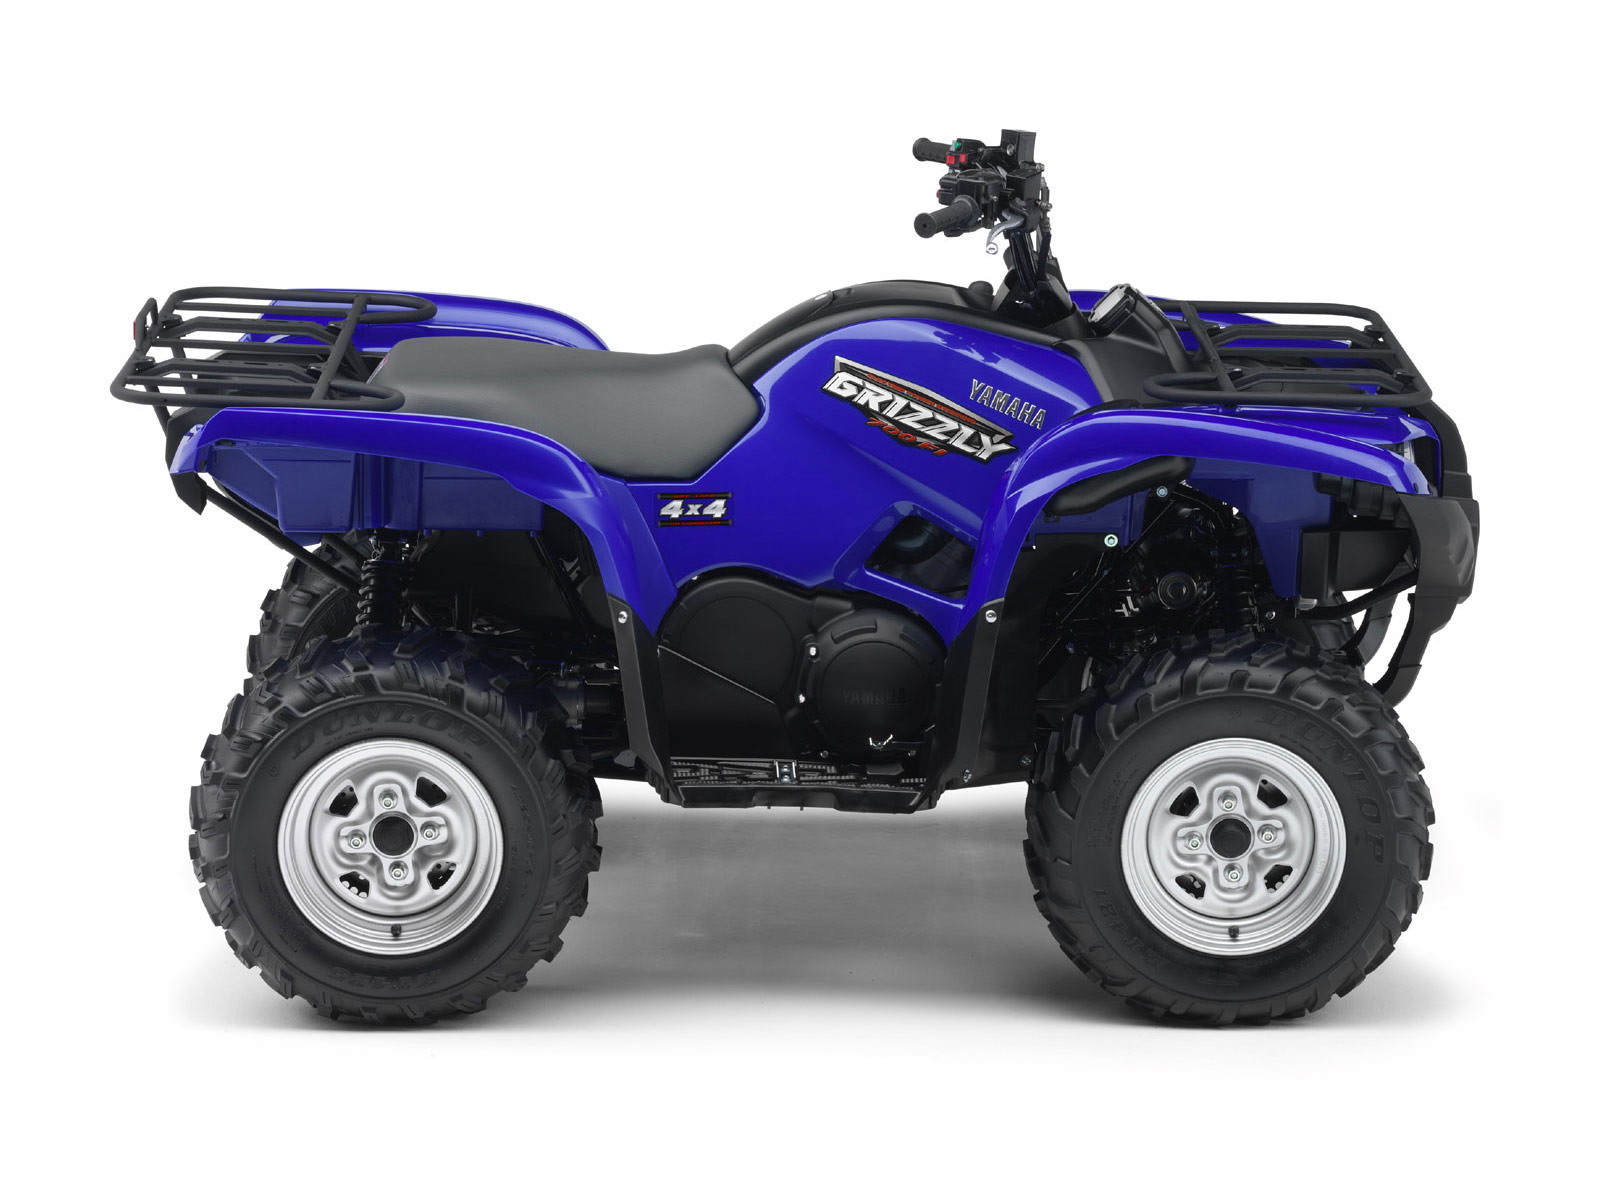 2009 yamaha grizzly 700 fi eps atv wallpapers specs for Yamaha grizzly atv